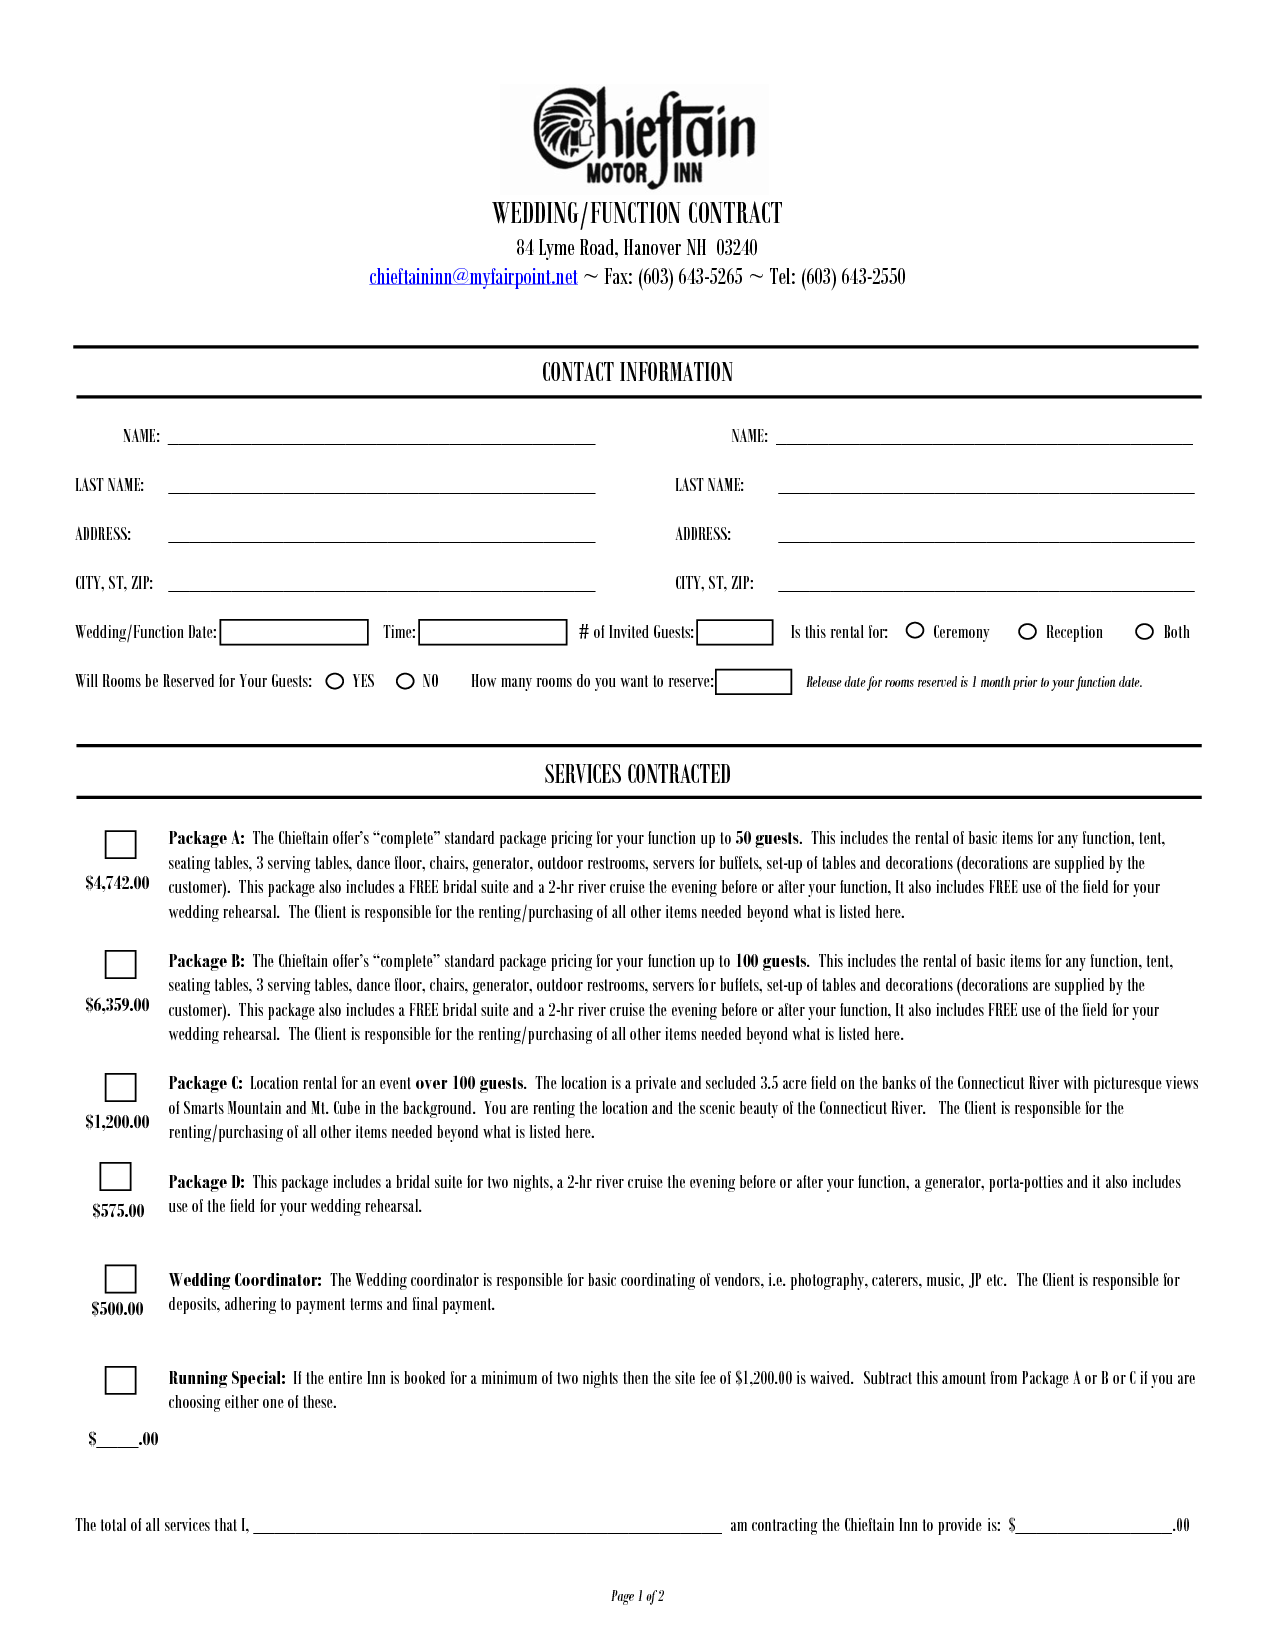 Wedding Contract Template Contracts Questionnaires Pinterest Weddings And Planning